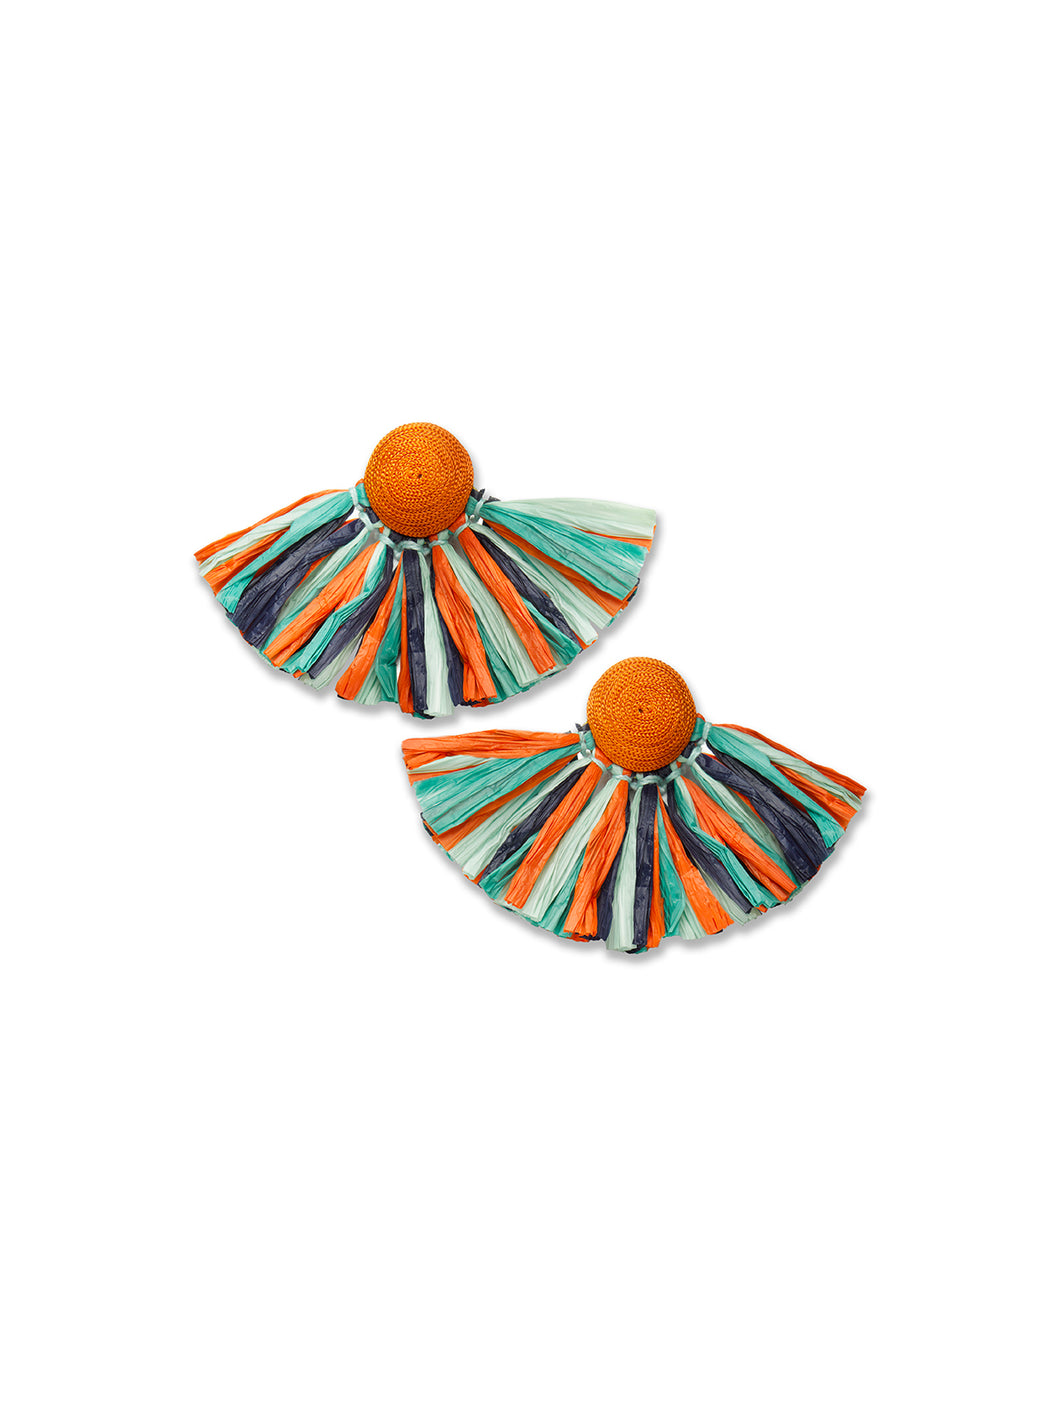 Stripe Raffia Sunburst Earrings